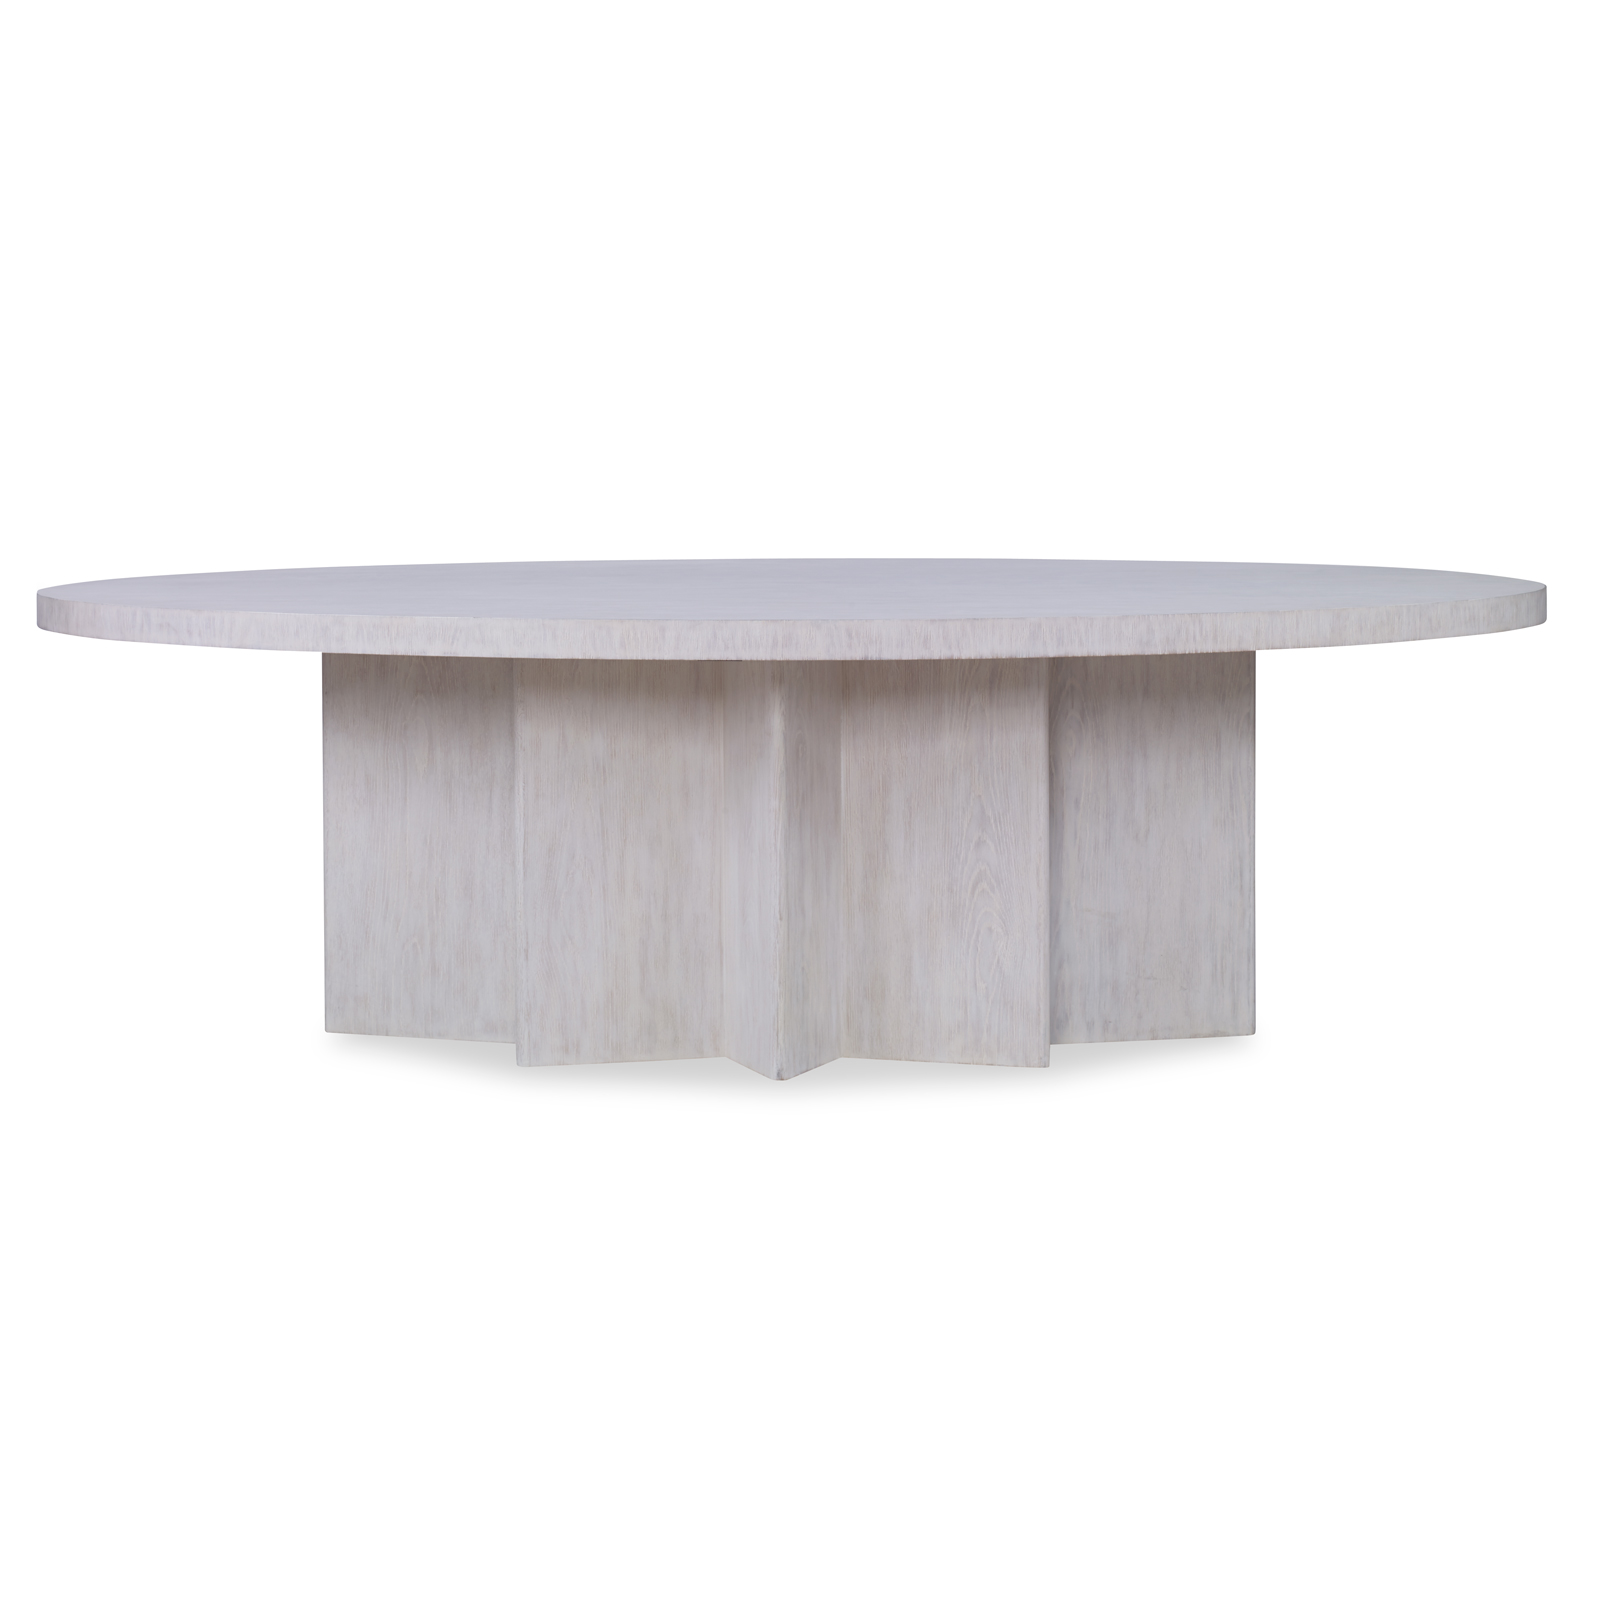 Equinox_Dining_Table_Smooth_White_Oak_Mr.Brown.jpg